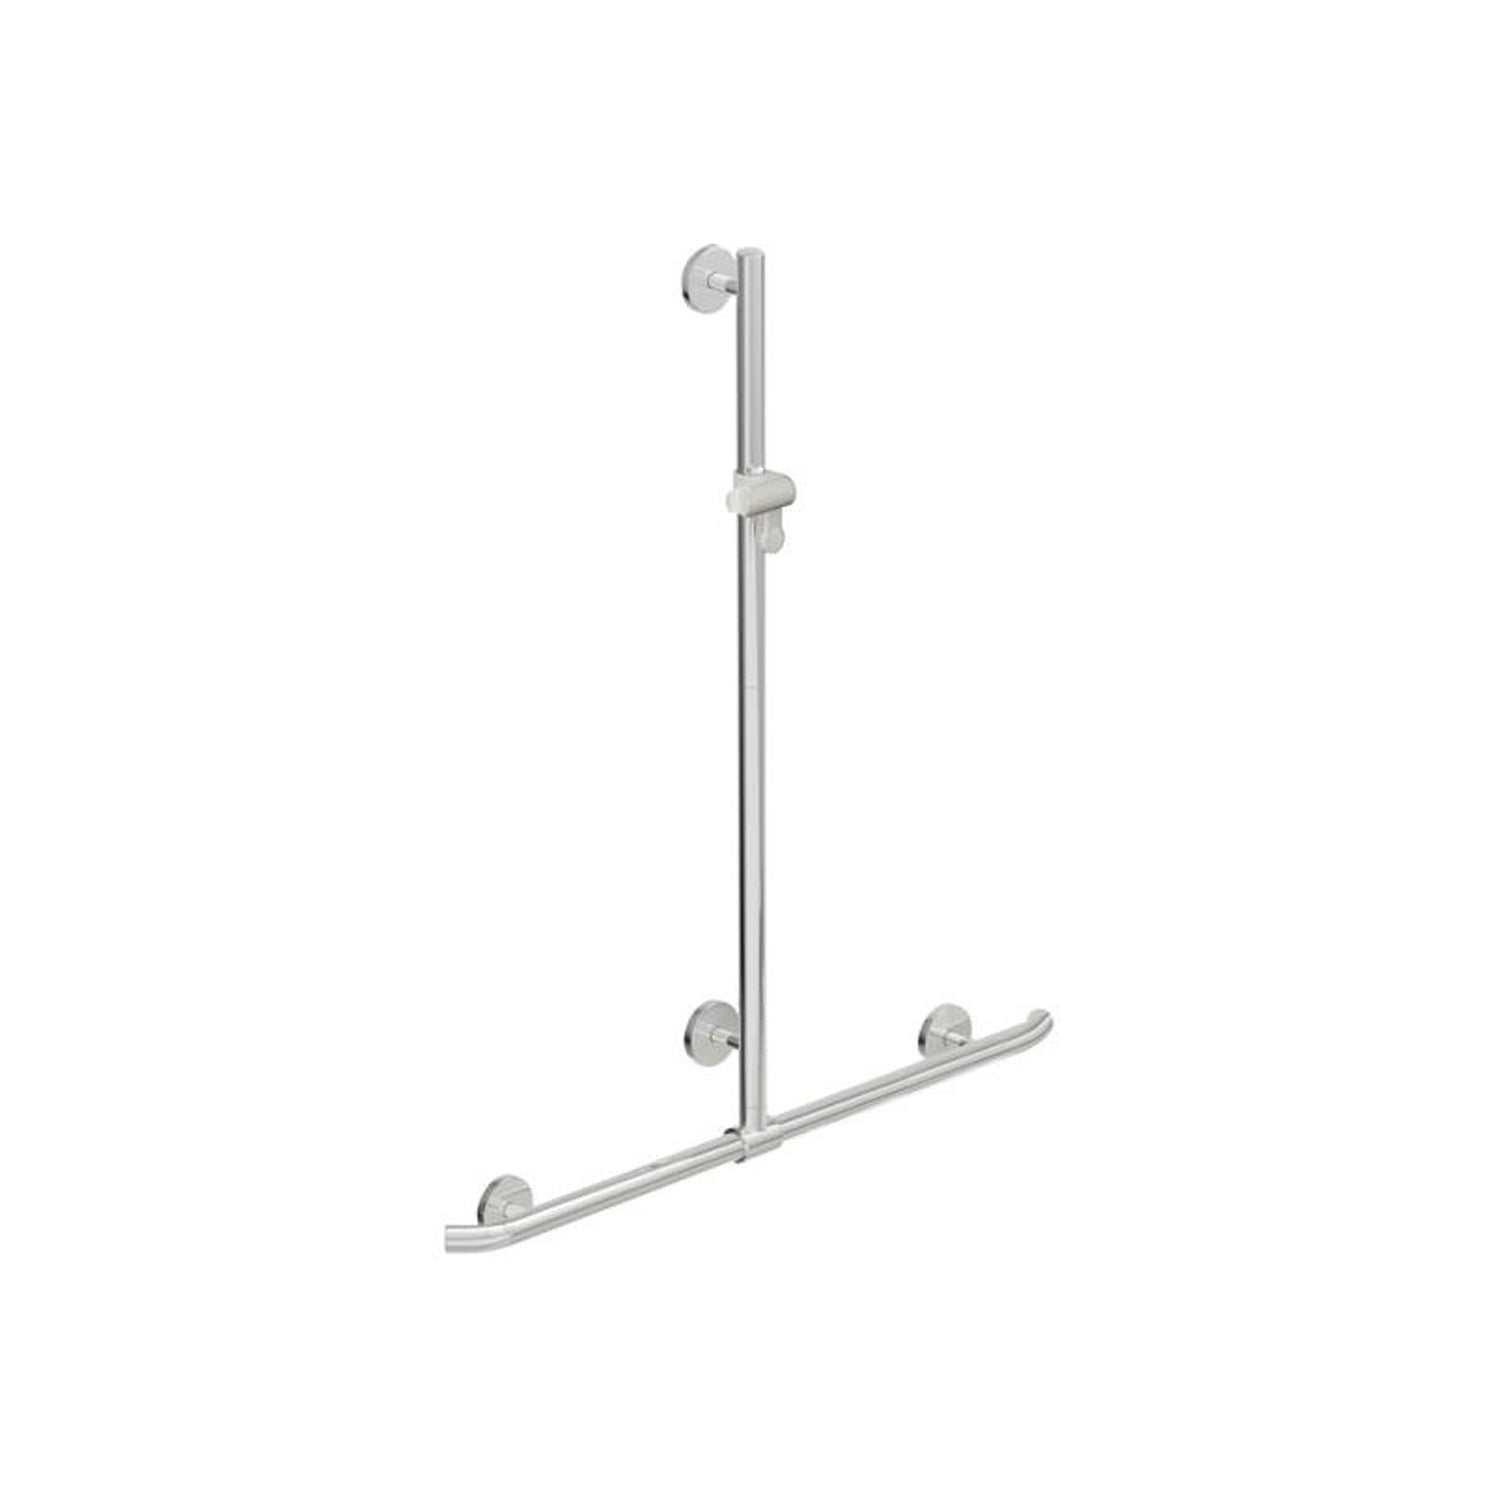 1100x1184mm Circula Supportive T Shaped Shower Rail with a chrome finish on a white background